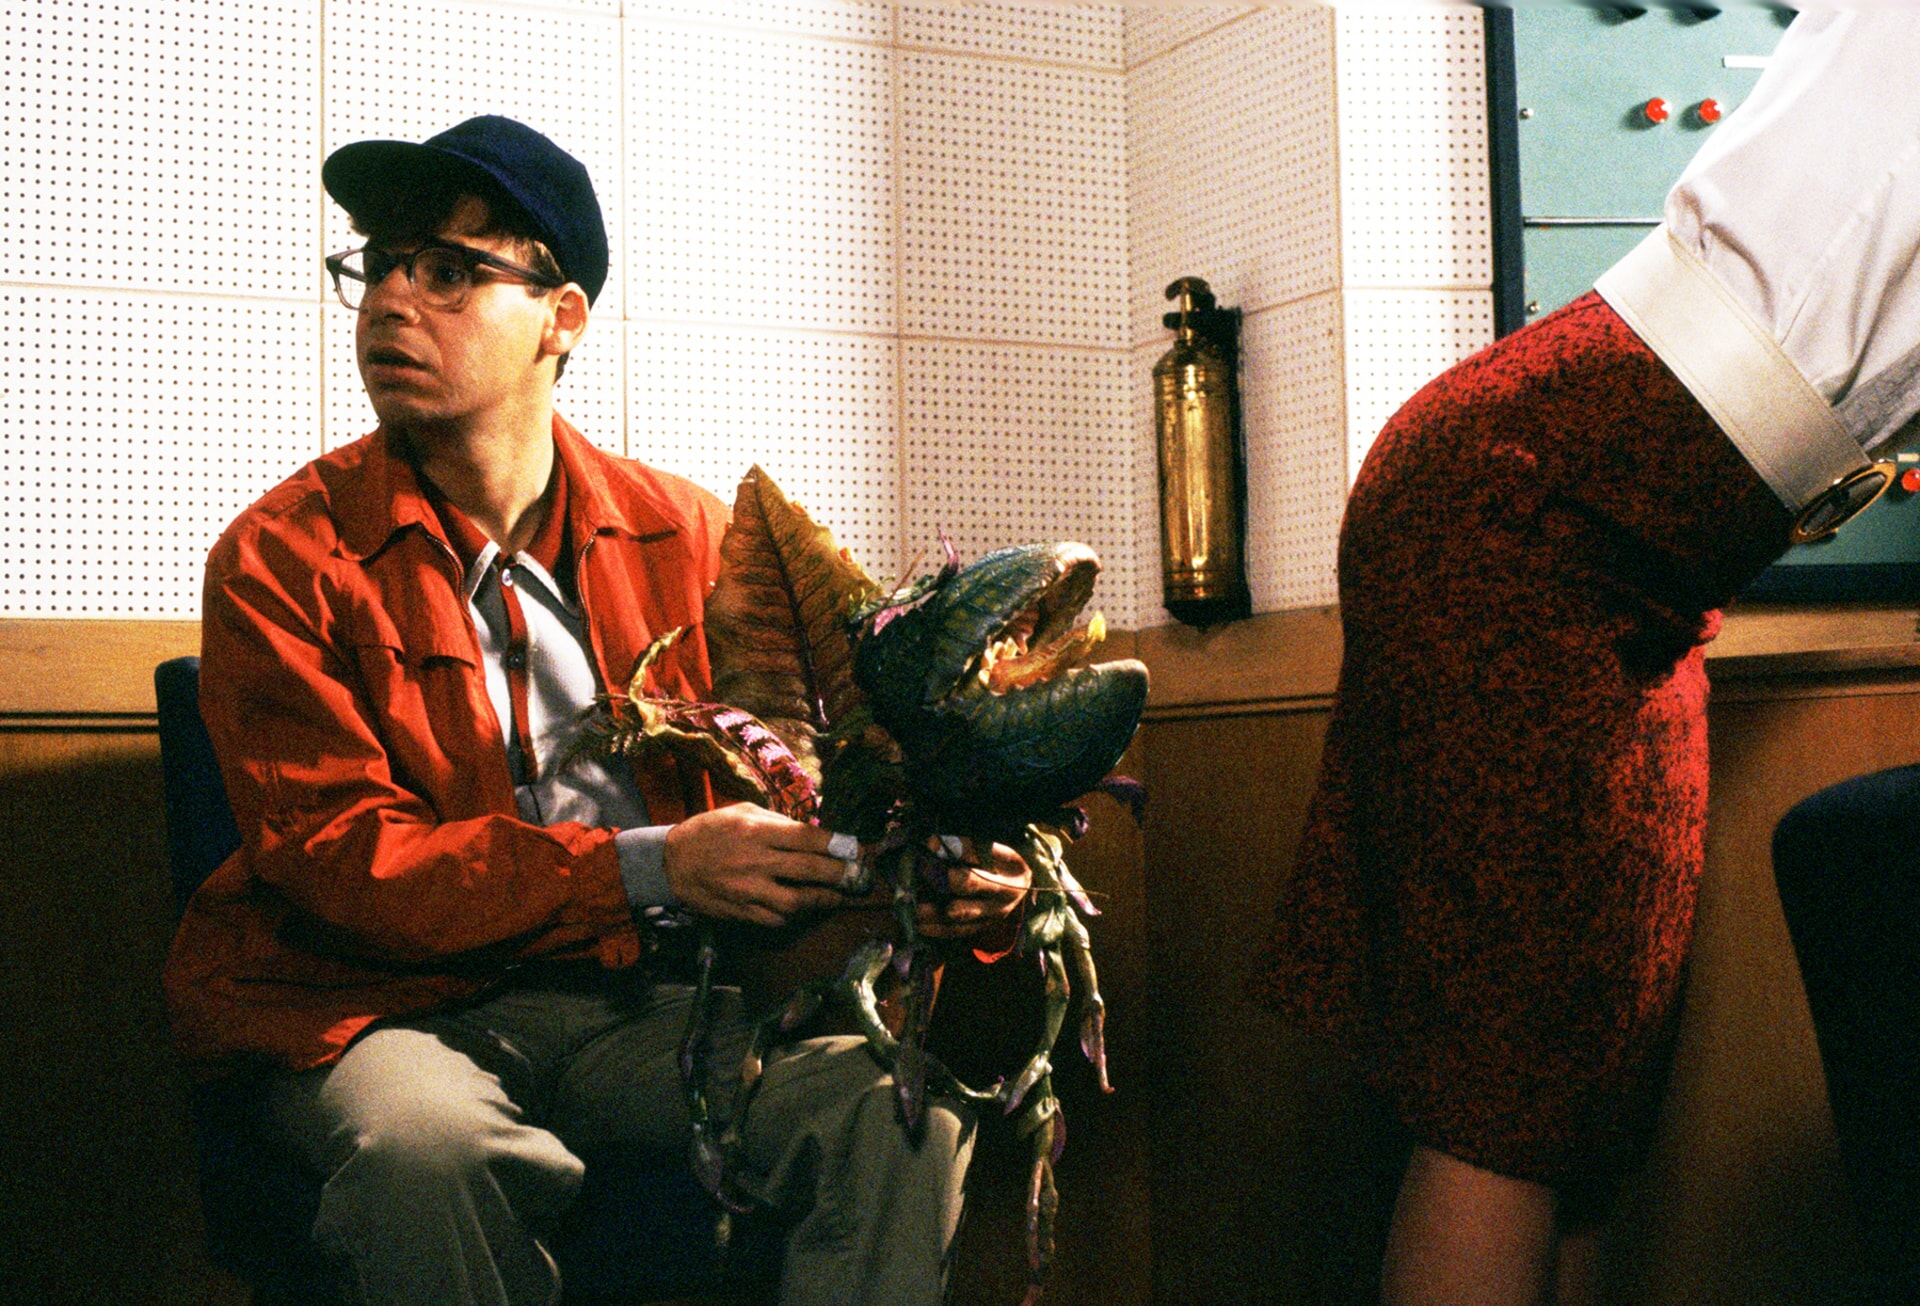 Little Shop of Horrors - Image 6